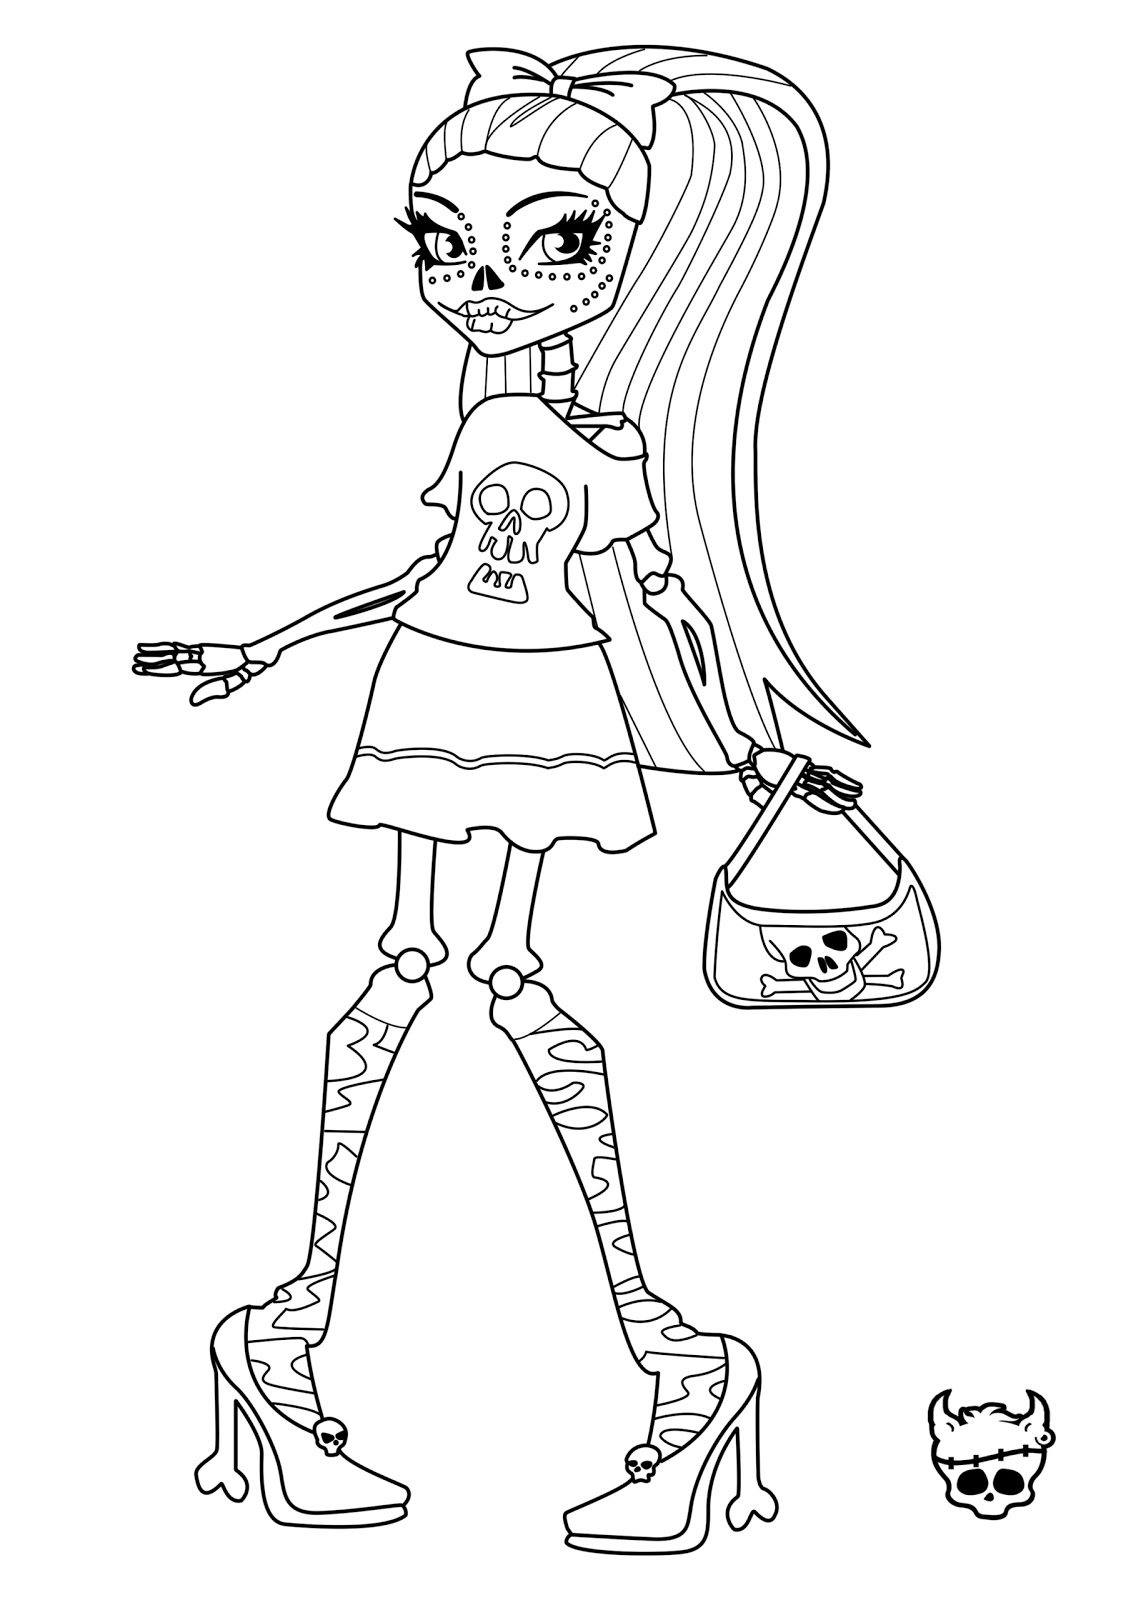 monster high black and white coloring pages imageslistcom monster high for coloring part 3 and coloring black monster pages high white